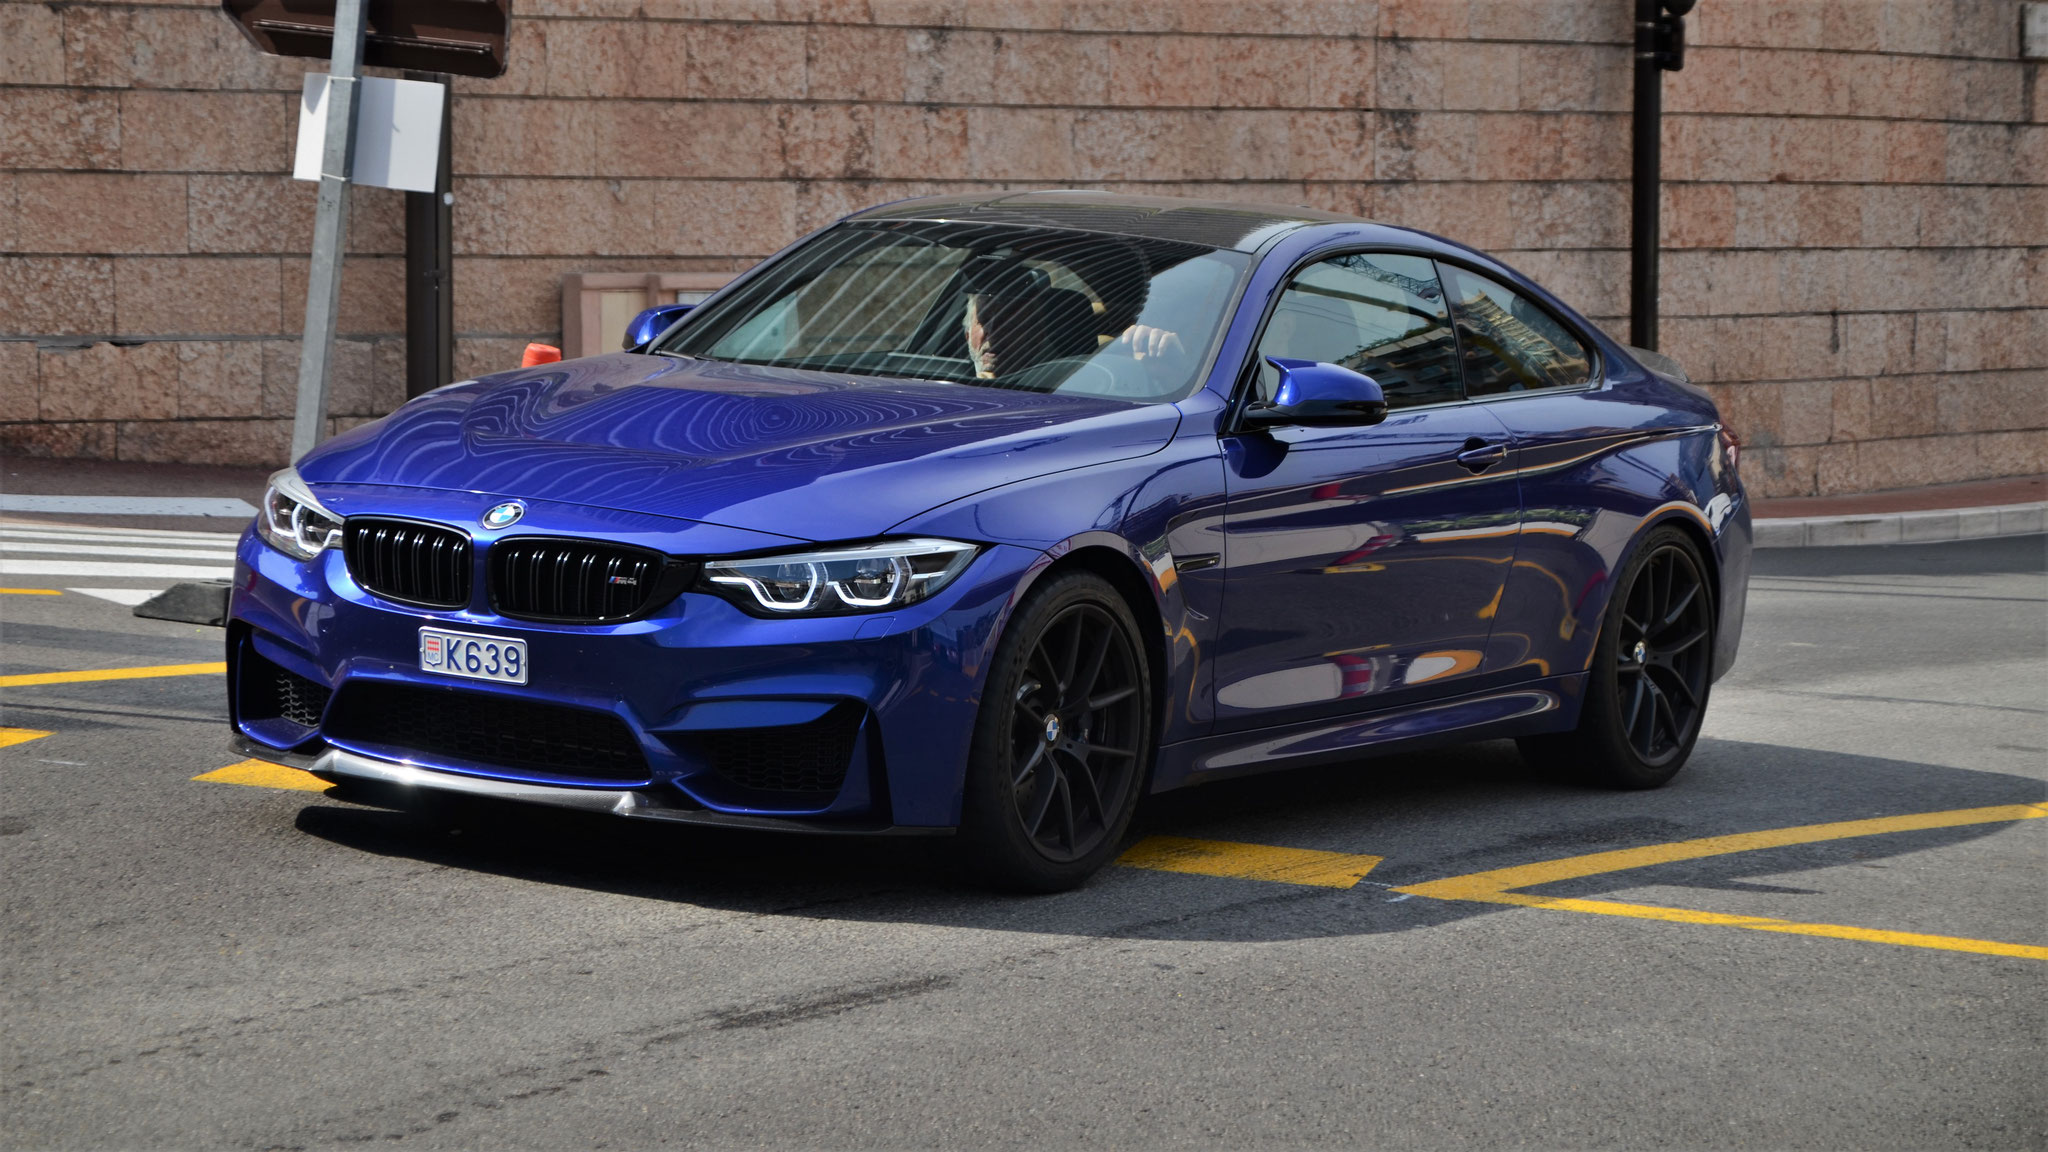 BMW M4 CS - K639 (MC)